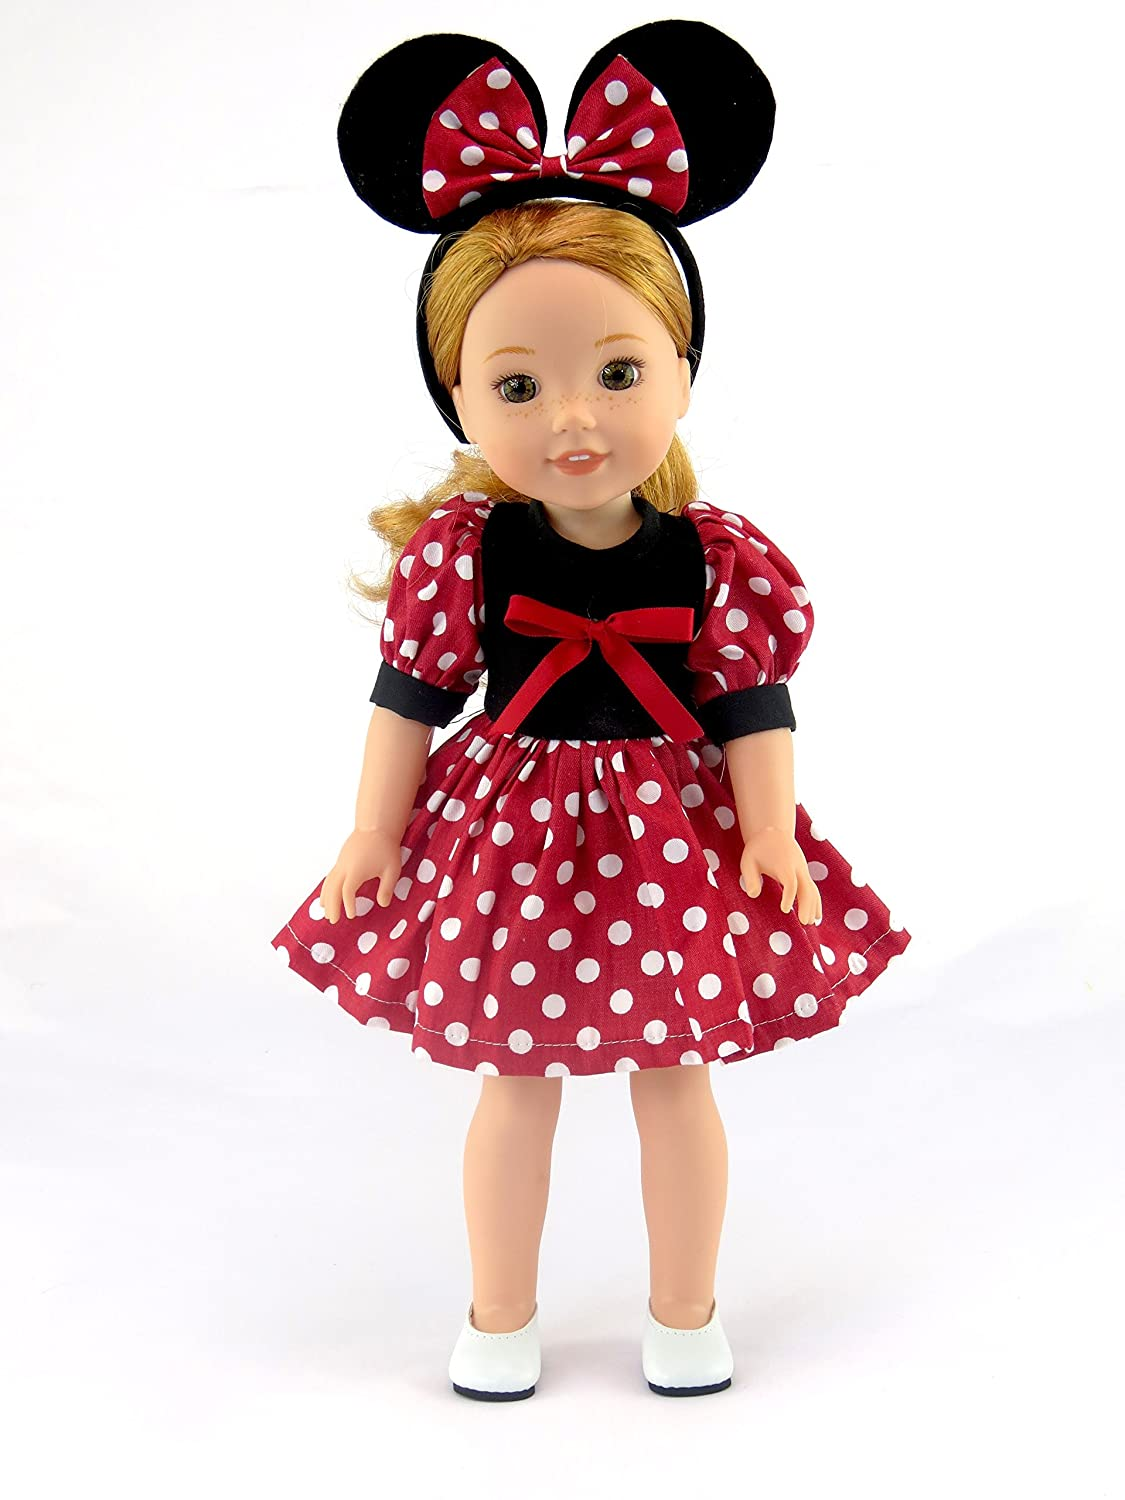 American Fashion World Little Mouse Dress Fits 14 Inch Wellie Wisher Dolls 14 Inch Doll Clothing